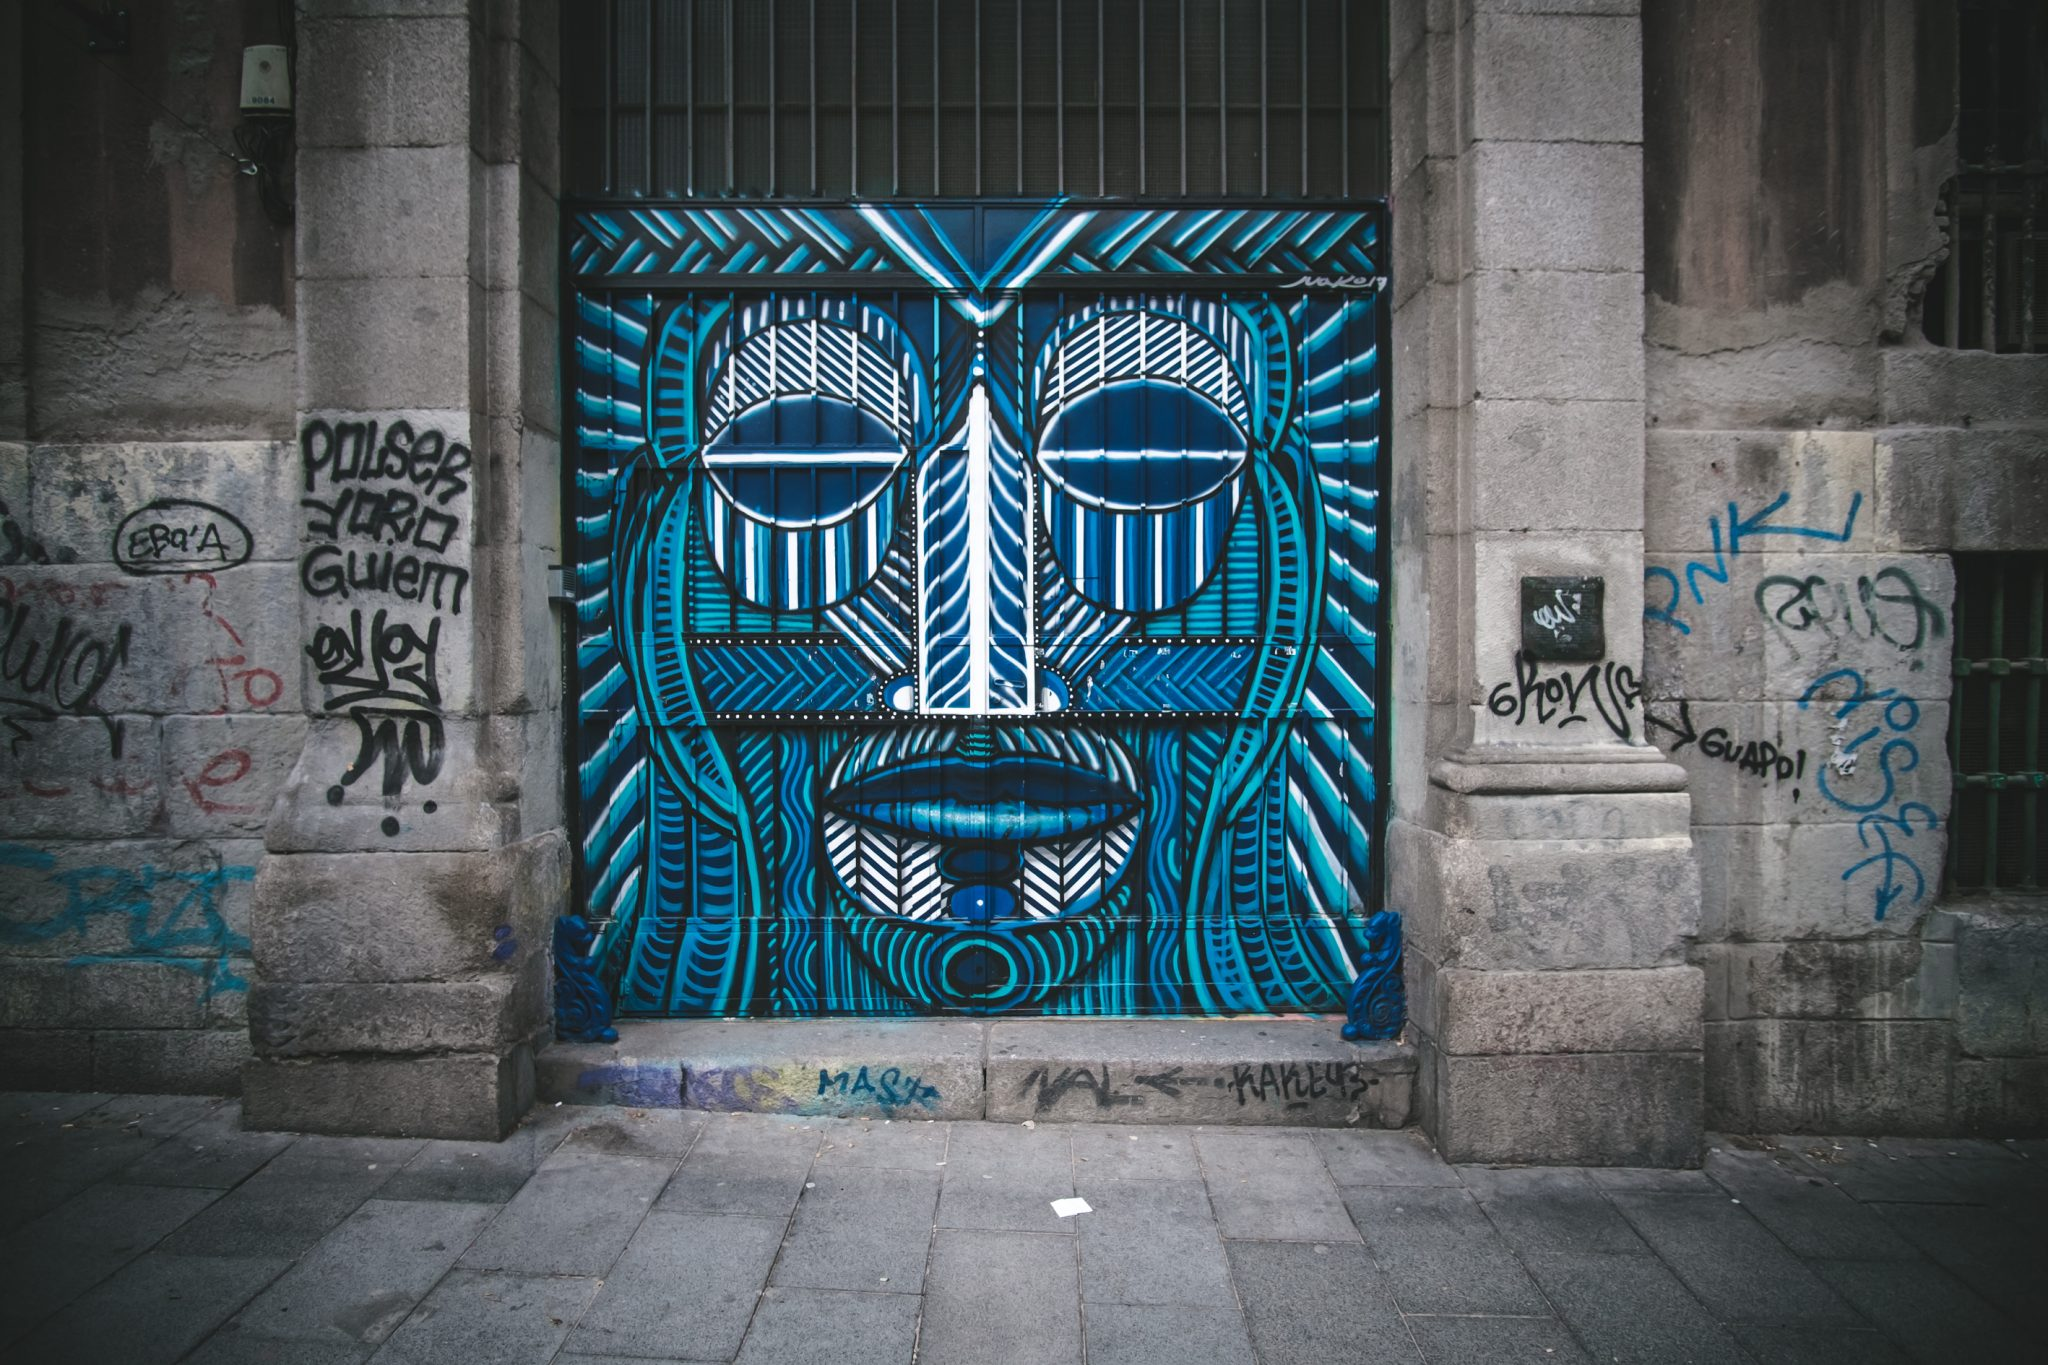 La Tabacalera Madrid mural art photo by Jo Kassis